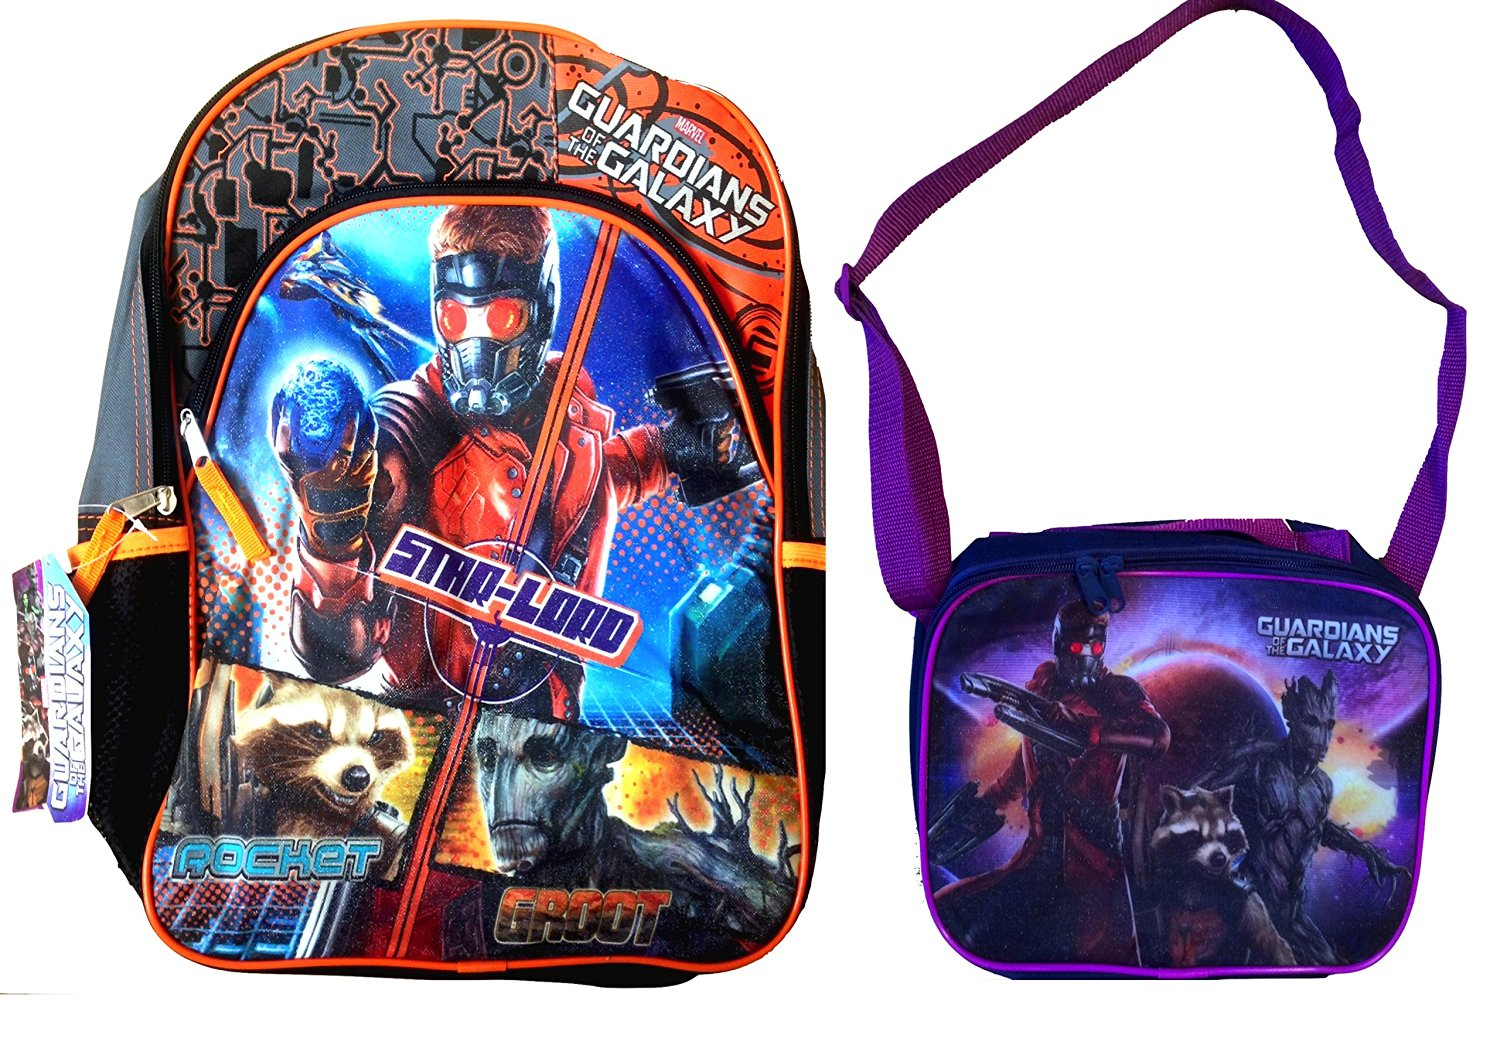 Guardians of the Galaxy Back to School Children's Backpack with Matching Strap Lunch Box (PURPLE LUNCH BOX)